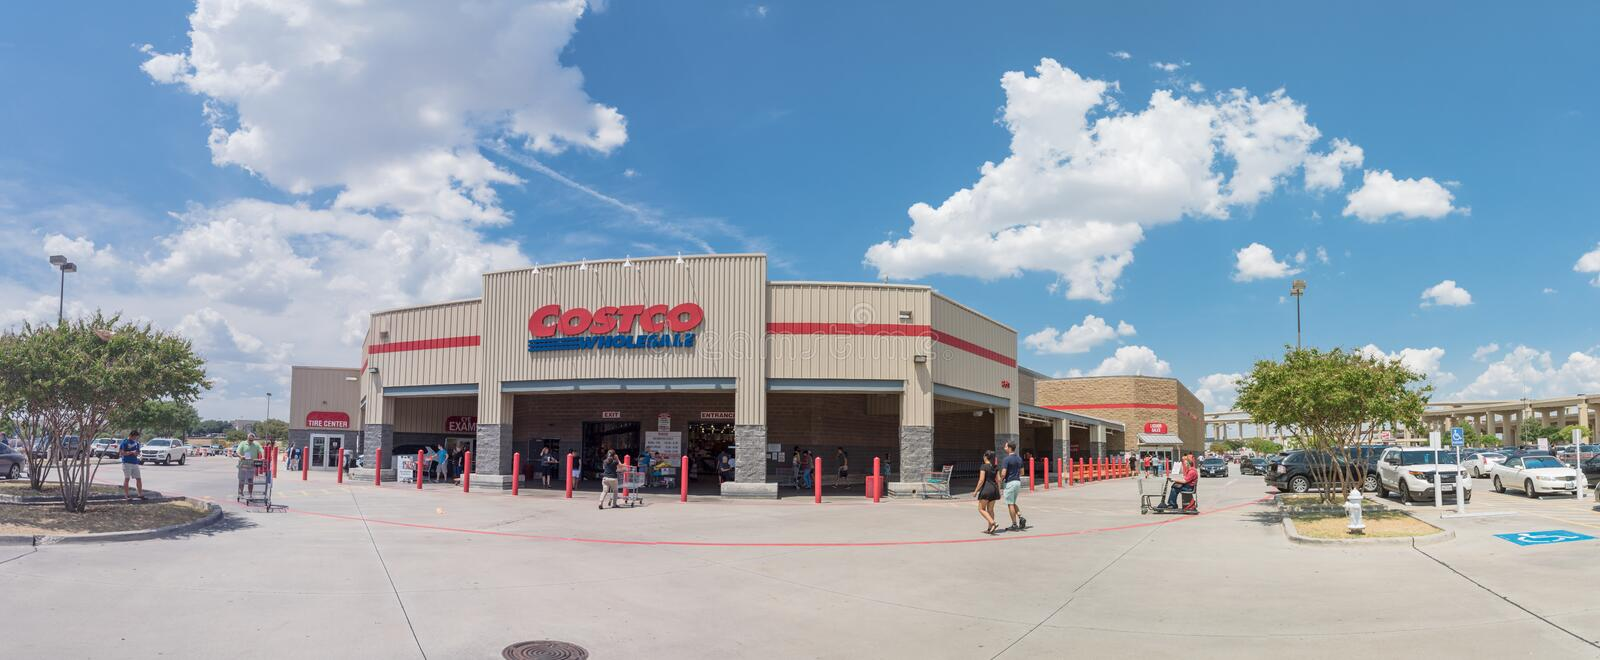 Panorama view entrance to Costco Wholesale store in Lewisville,. Lewisville, TX, USA-AUG 4, 2018:Panorama entrance Costco Wholesale storefront and liquor store royalty free stock photo